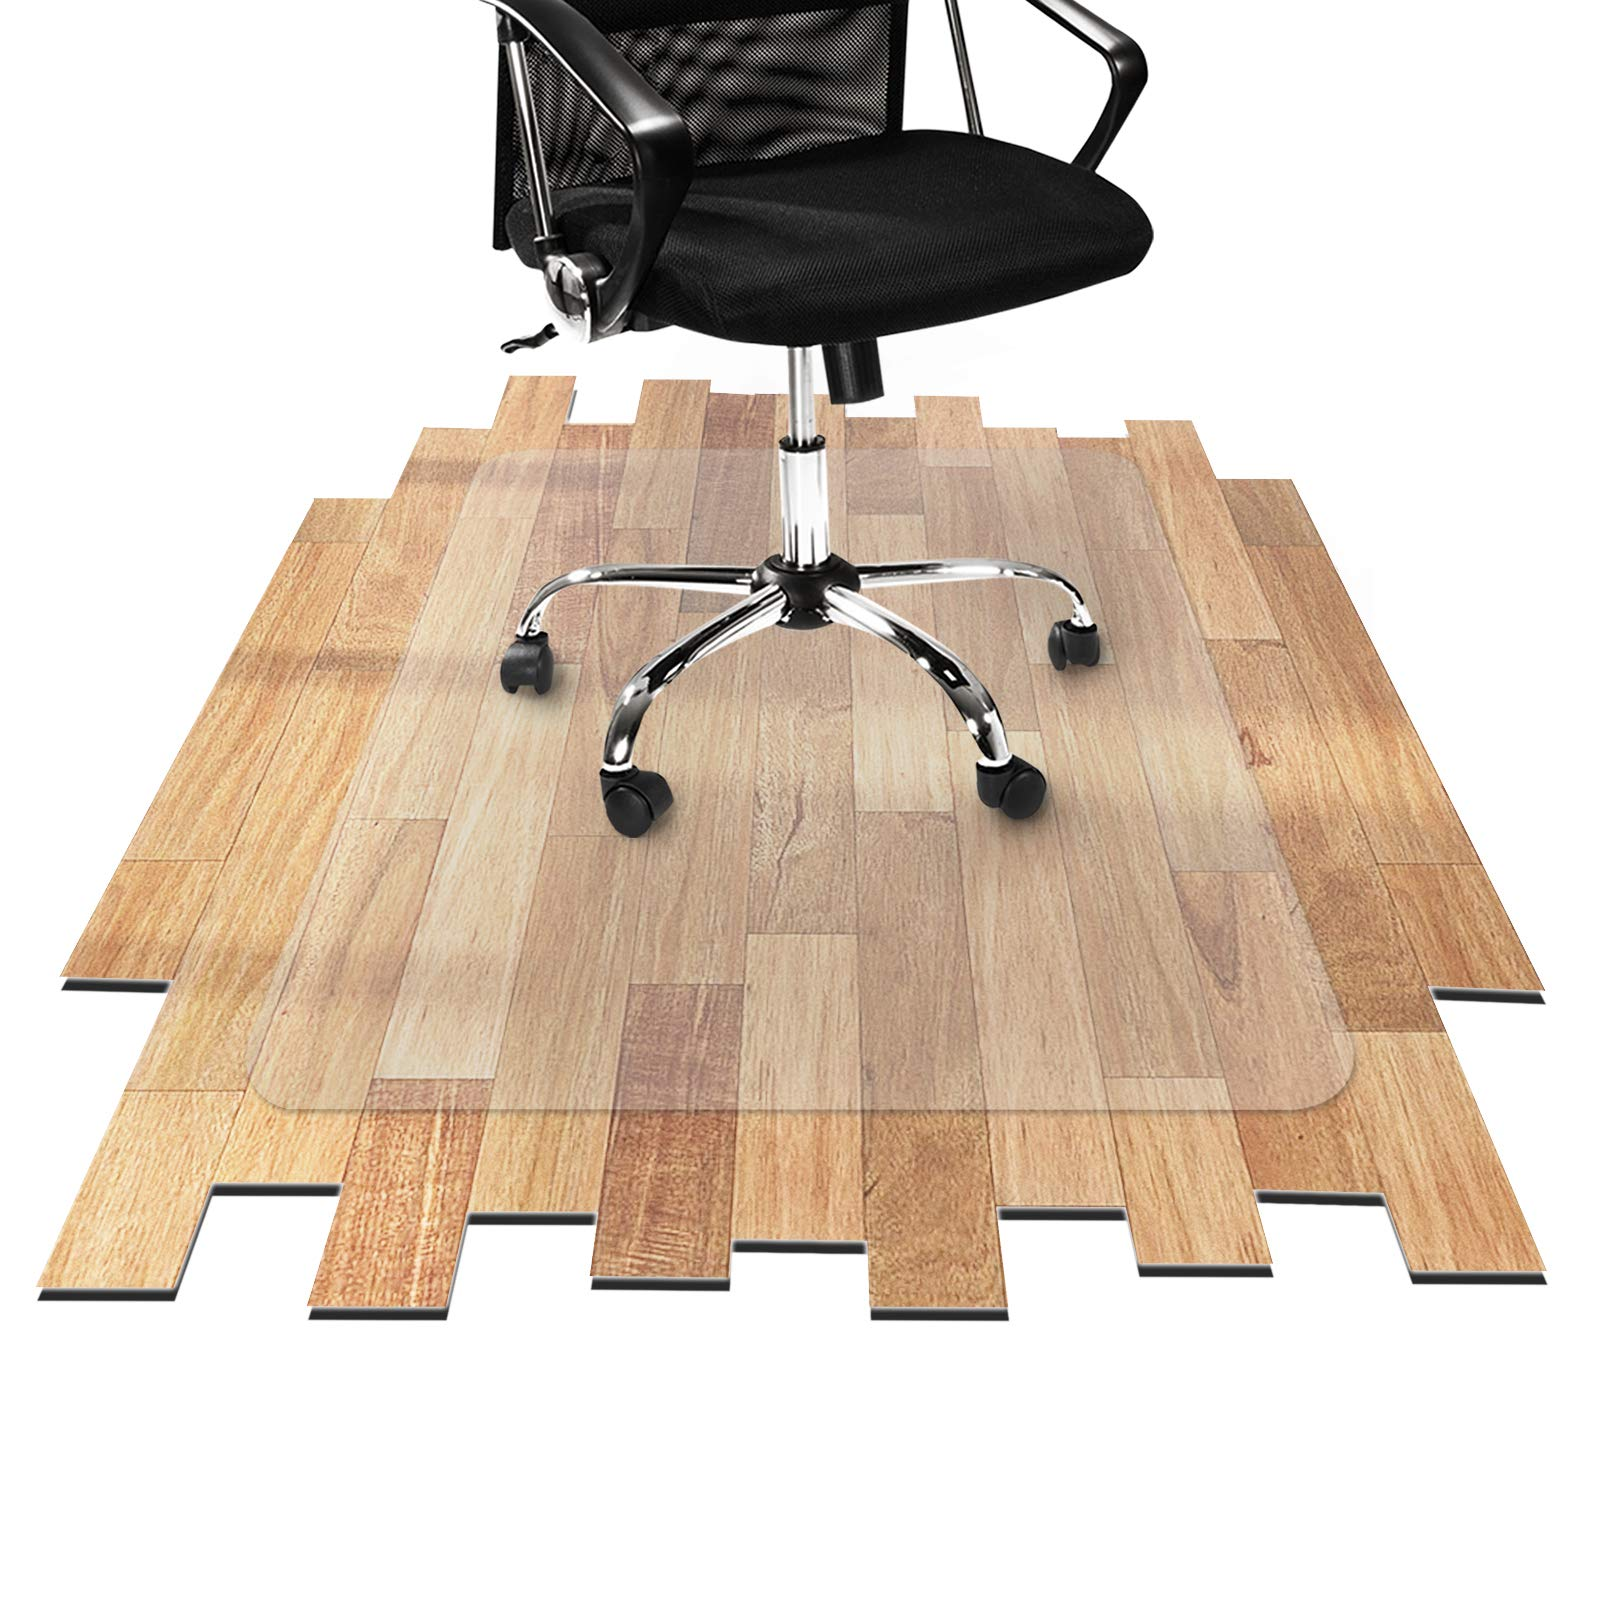 Desk Chair Mat for Hardwood Floor - Hard Floor Protection Mat for Office & Home | Many Sizes Available | Clear - 48'' x 60''